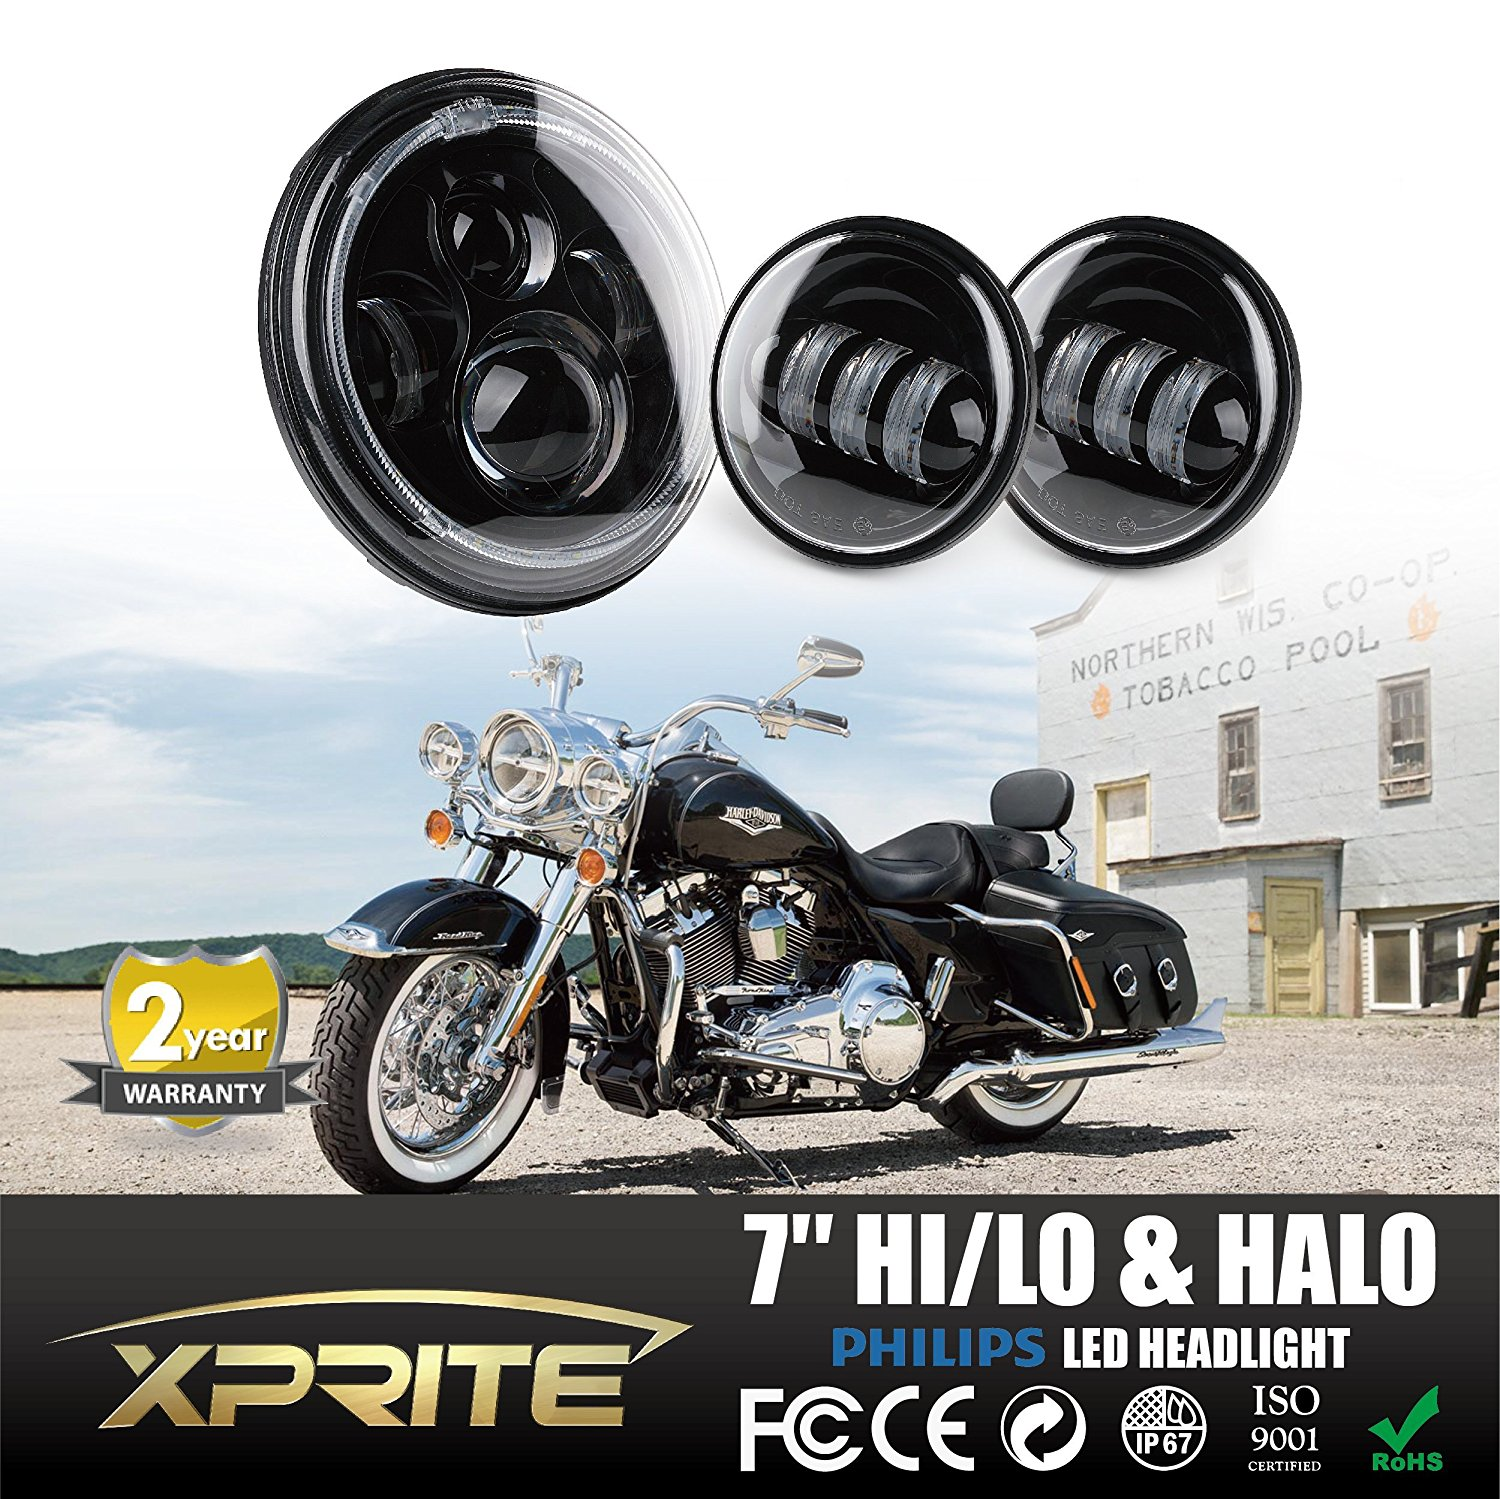 """Xprite 7"""" Inch Round 60W 4800 Lumens Hi/Lo Beam Cree LED Headlights w/ Halo Ring Angel Eyes Crystal DRL & 4.5"""" Inch 60W Black Cree Led Spot Lights 6000k White Passing Projector Fog Lamp"""